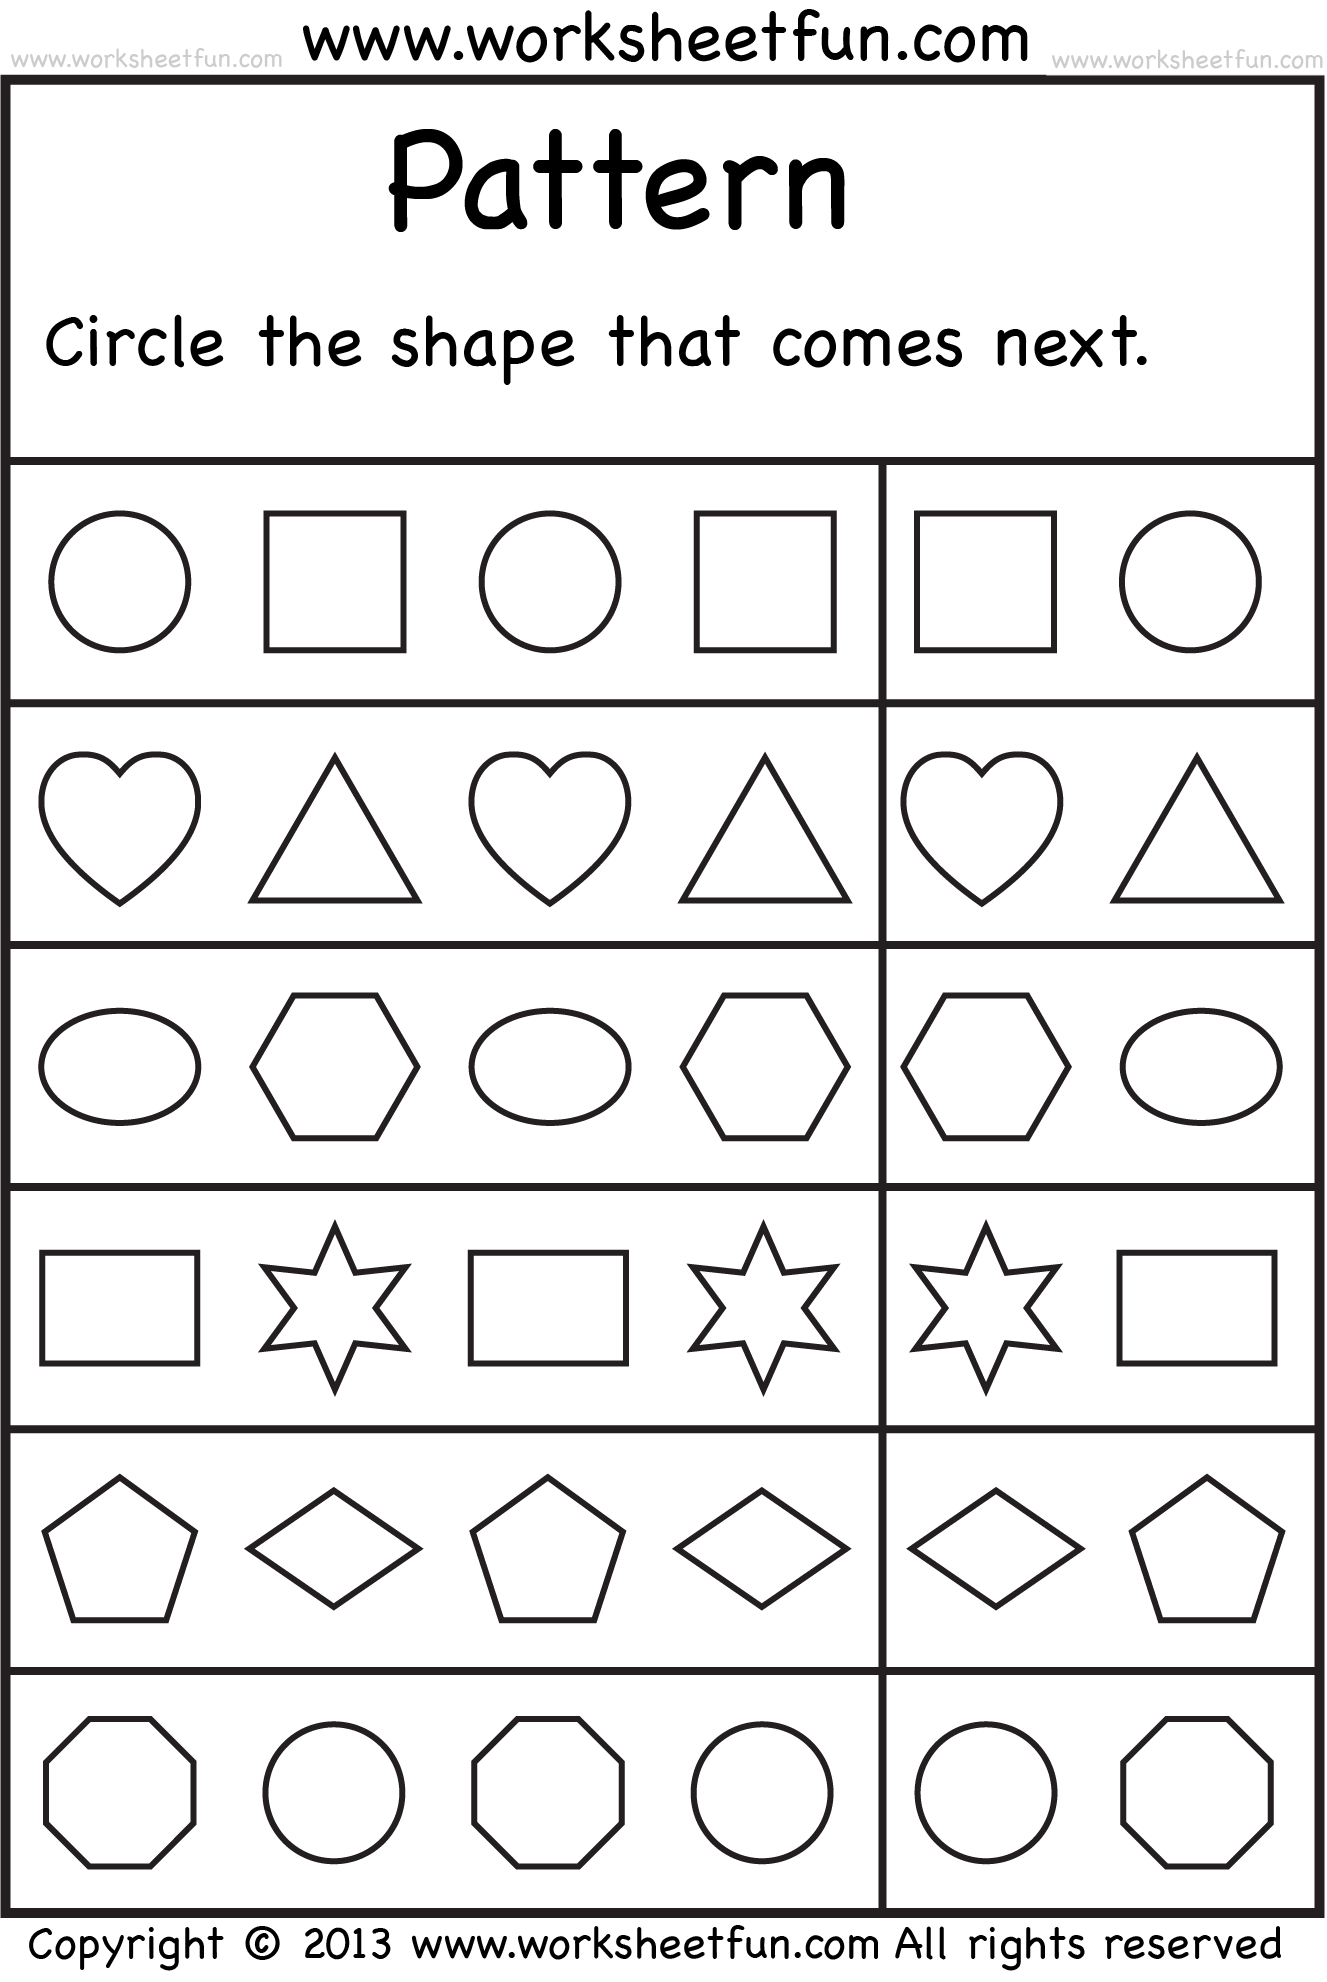 Weirdmailus  Gorgeous  Images About School Worksheets On Pinterest  Number Words  With Goodlooking  Images About School Worksheets On Pinterest  Number Words Alphabet Worksheets And Free Printable Kindergarten Worksheets With Cool Laboratory Apparatus Worksheet Also Math Distributive Property Worksheets In Addition Kindergarten Syllable Worksheets And Math St Grade Worksheet As Well As Metric System Measurement Conversions Worksheet Additionally Graph Pictures Worksheets From Pinterestcom With Weirdmailus  Goodlooking  Images About School Worksheets On Pinterest  Number Words  With Cool  Images About School Worksheets On Pinterest  Number Words Alphabet Worksheets And Free Printable Kindergarten Worksheets And Gorgeous Laboratory Apparatus Worksheet Also Math Distributive Property Worksheets In Addition Kindergarten Syllable Worksheets From Pinterestcom